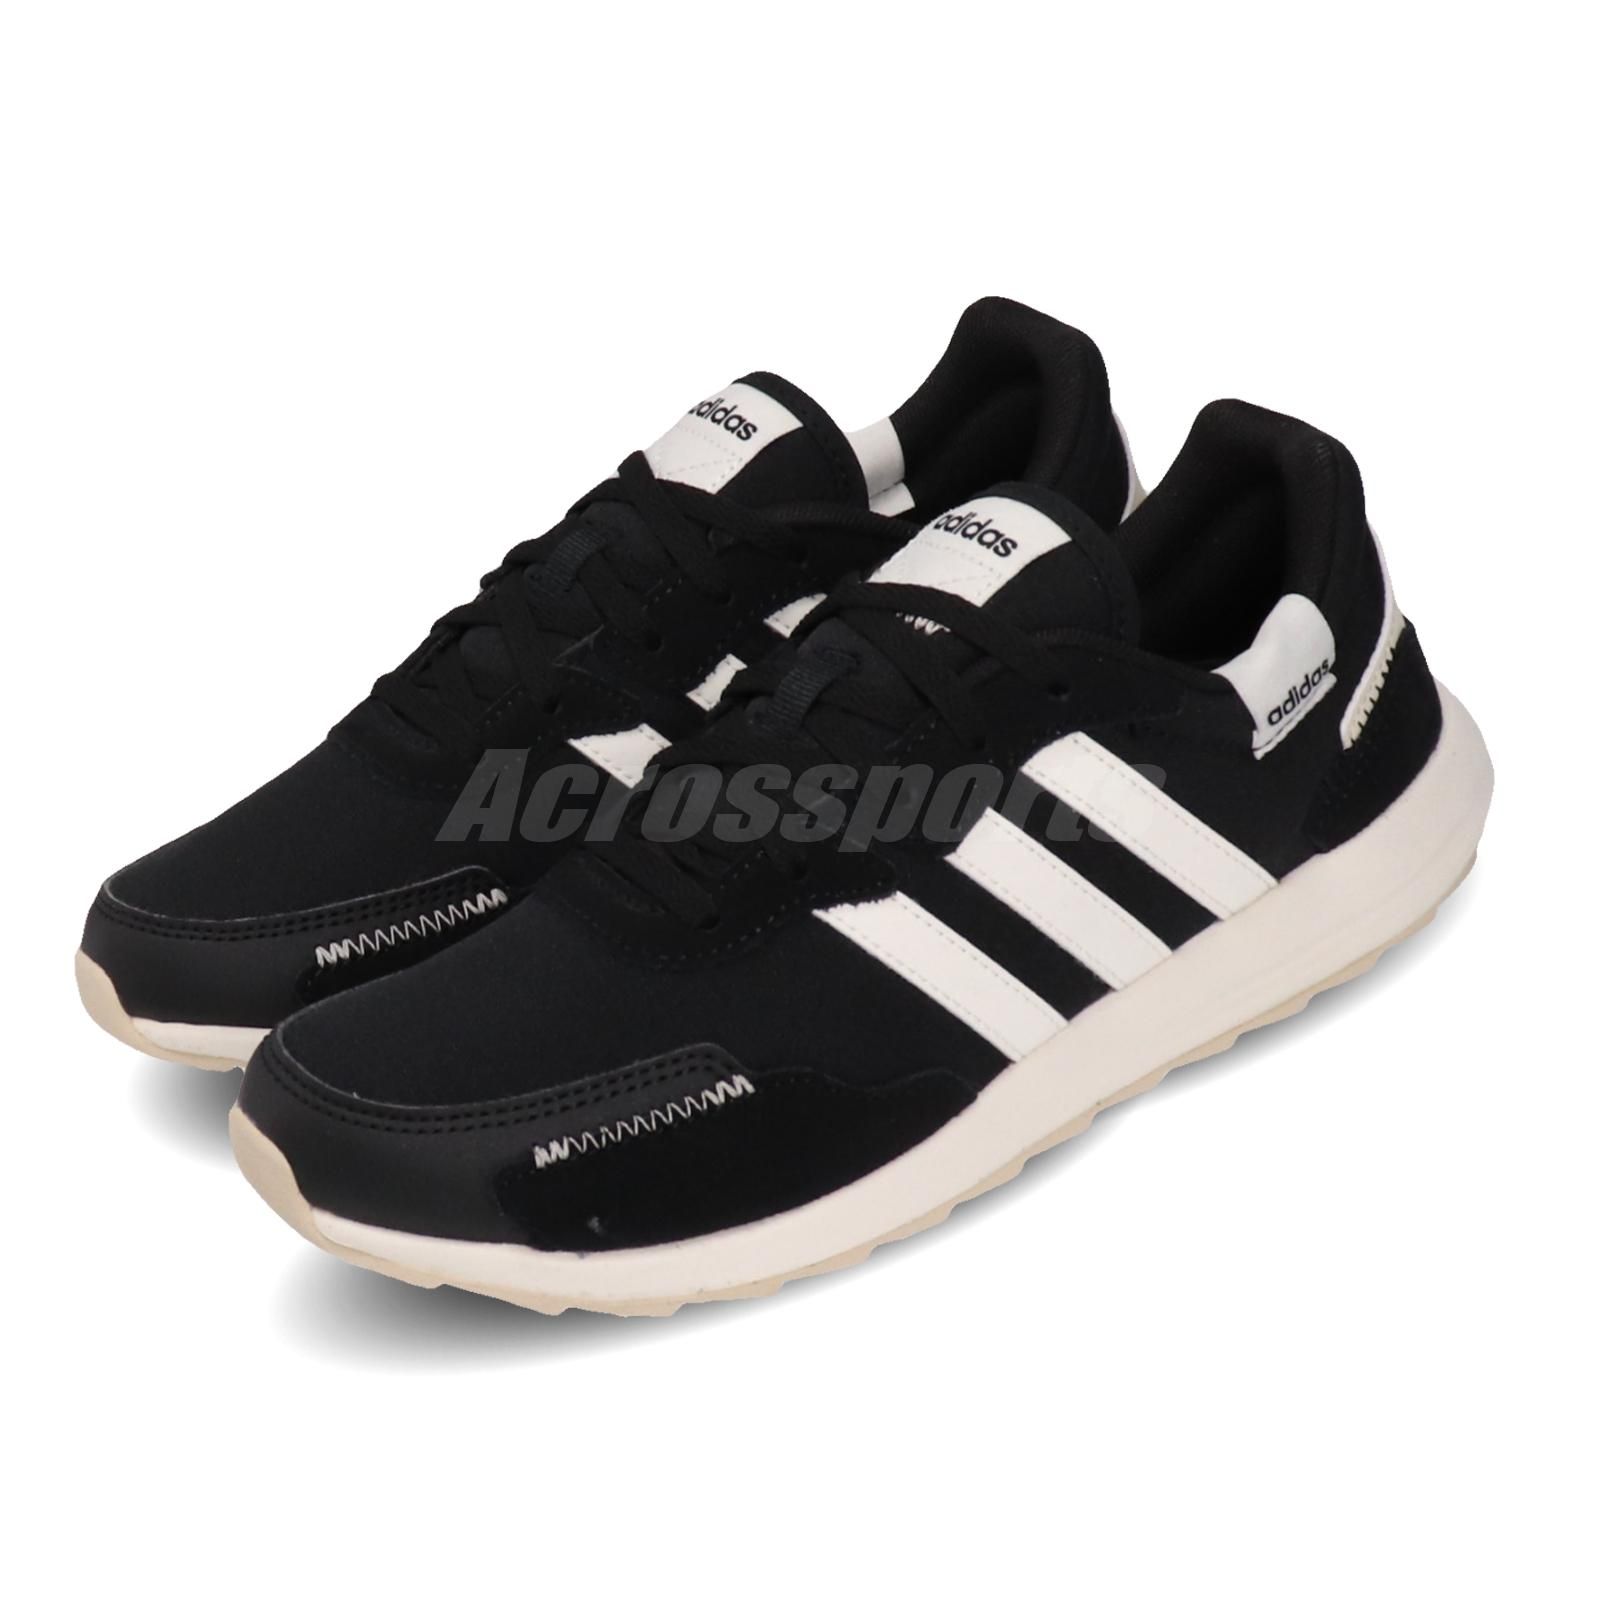 adidas neo casual shoes cheap online